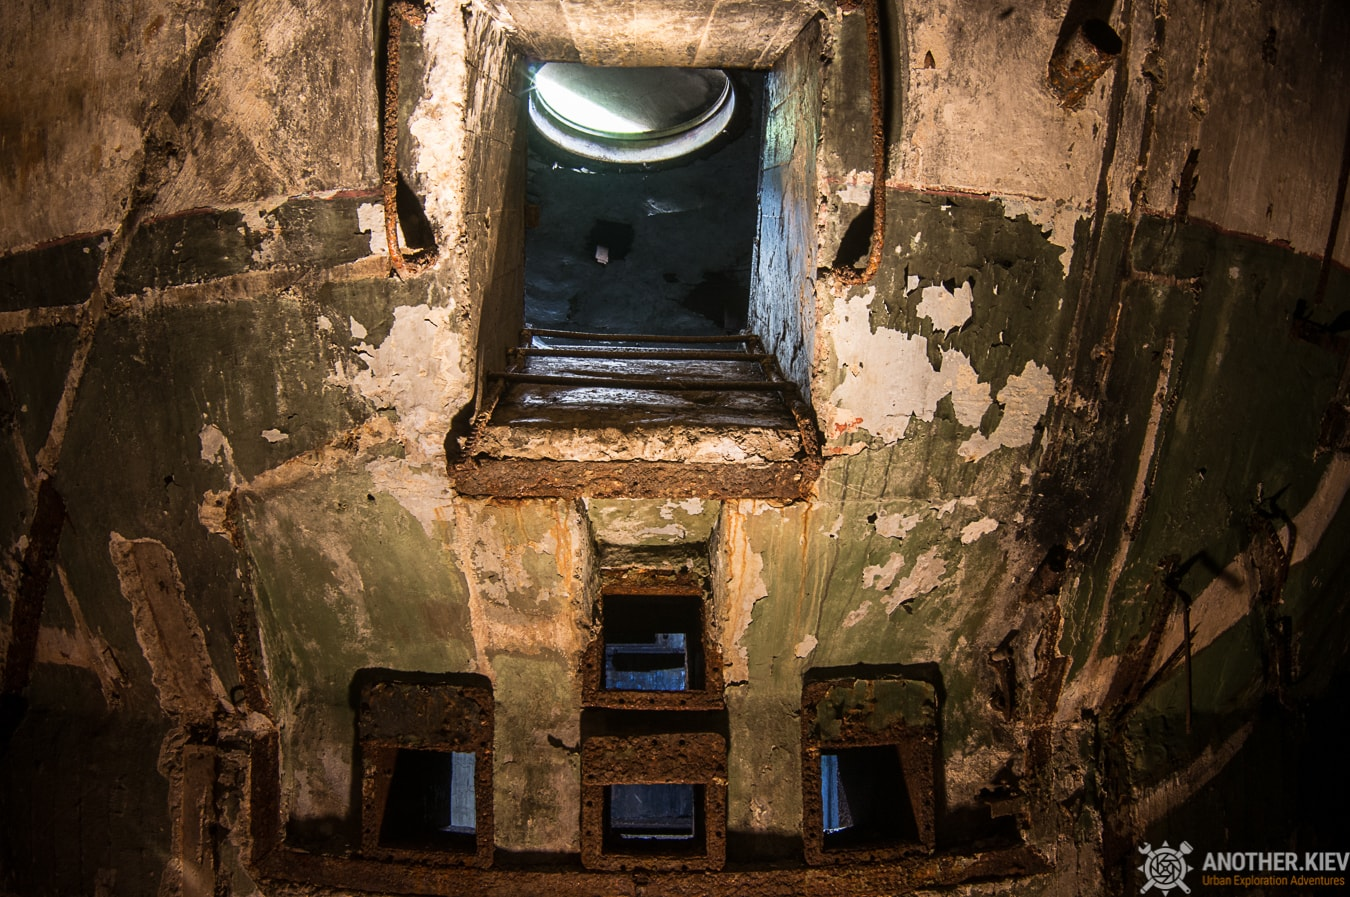 window to the shaft of missile